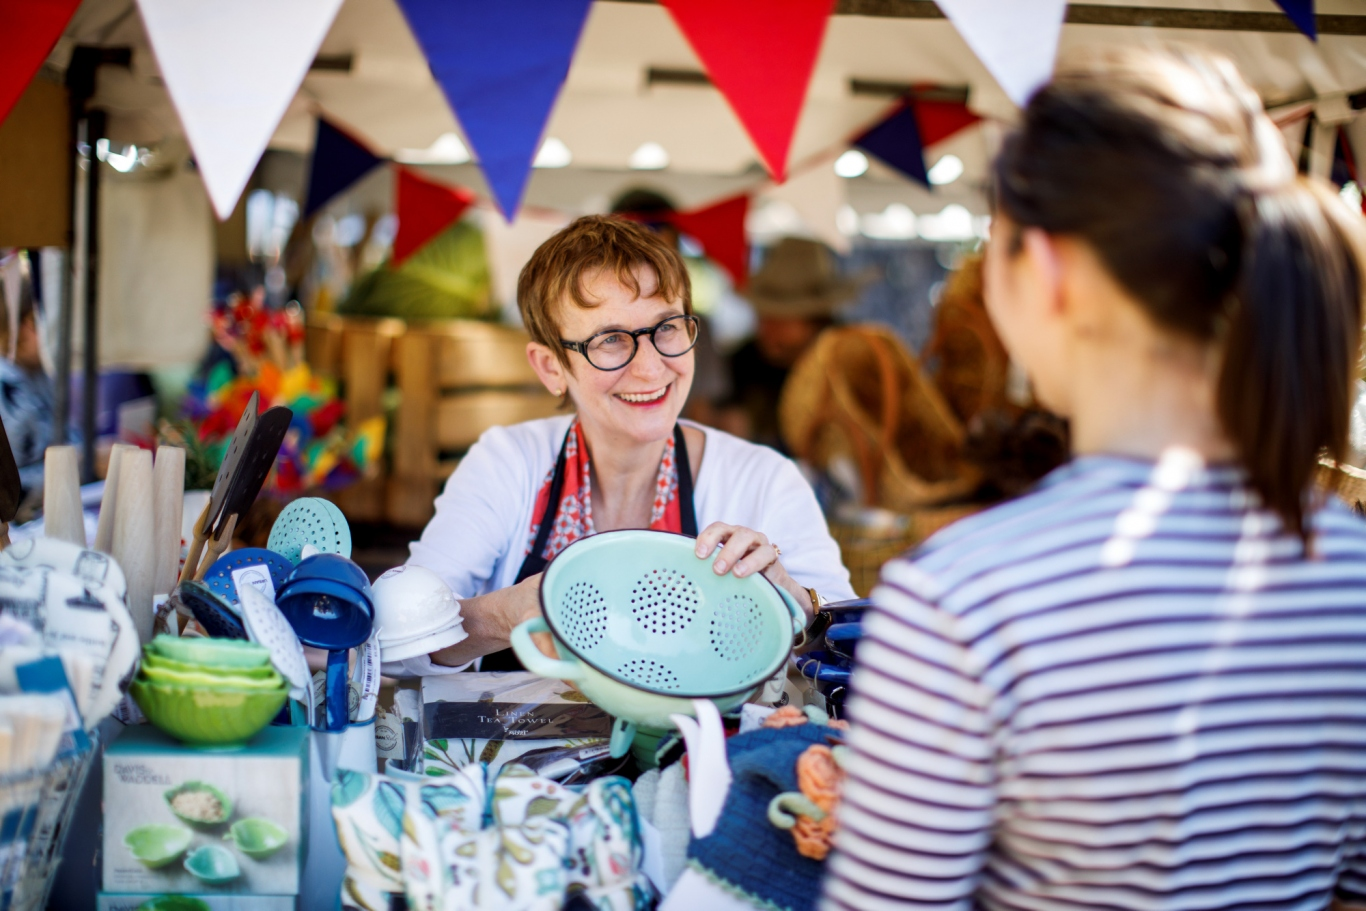 Woman in market stall holding up colander to show customer.